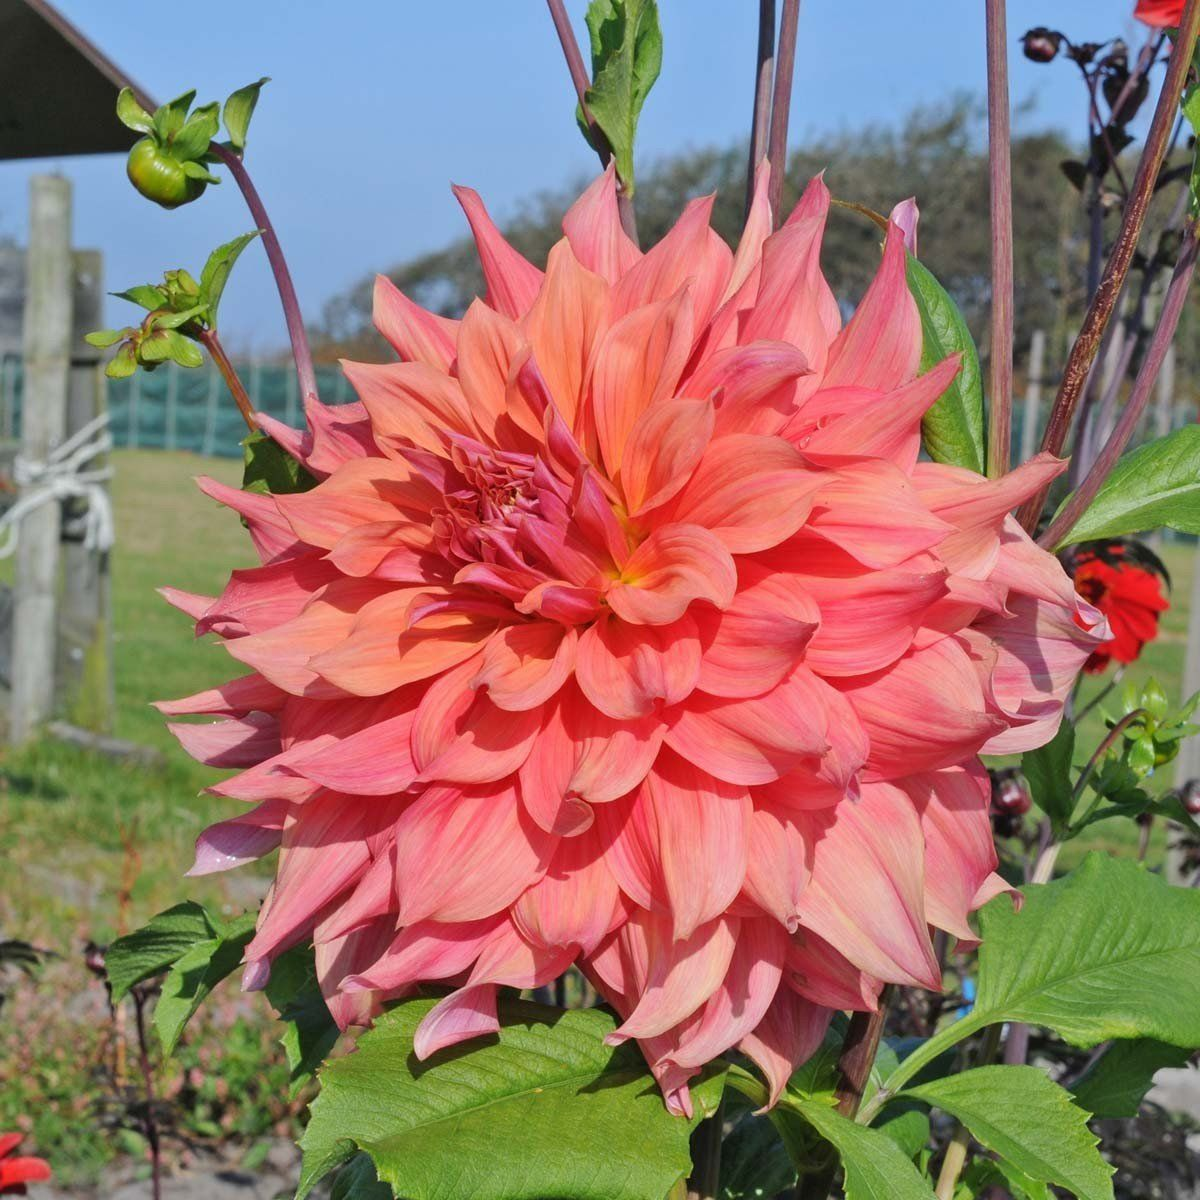 Dahlia dinnerplate ace summer sunset 2 tuber great cut flowers dahlia dinnerplate ace summer sunset 2 tuber great cut flowers perennial izmirmasajfo